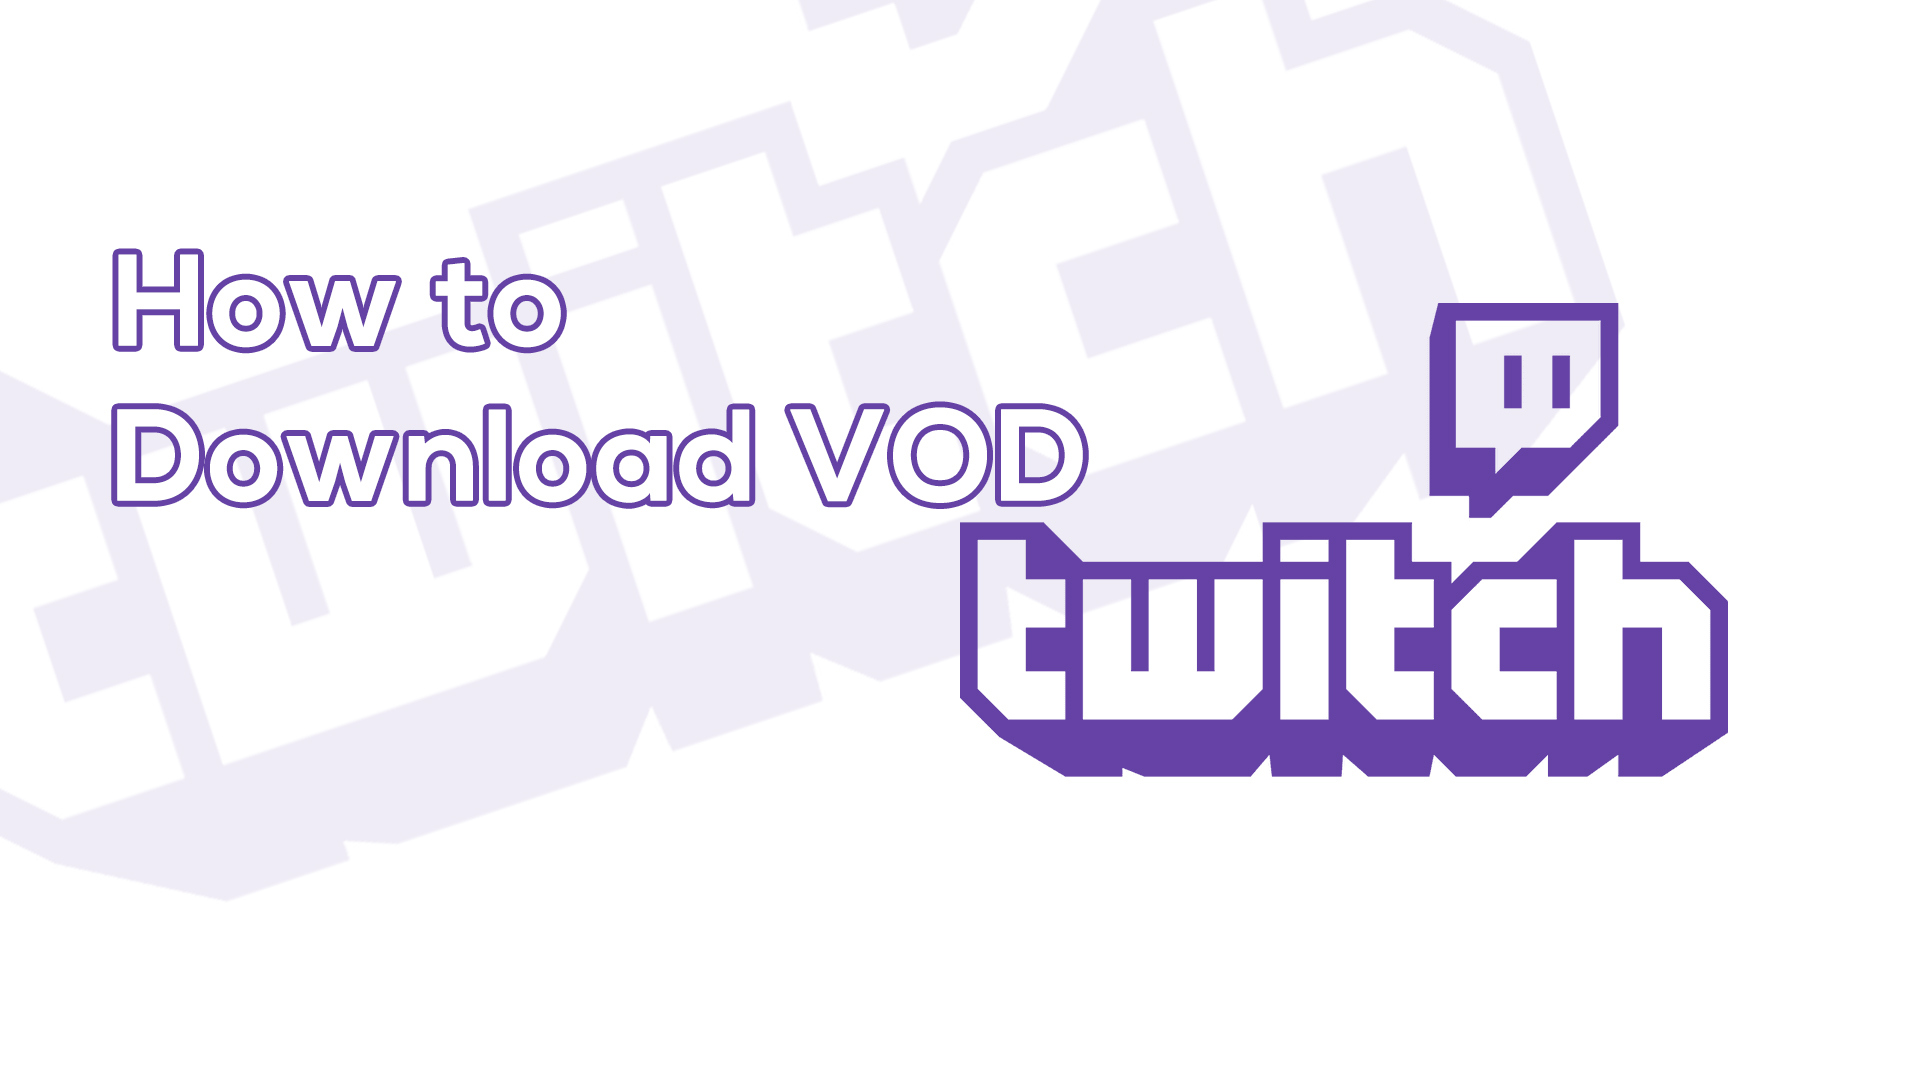 how to download twitch videos on phone